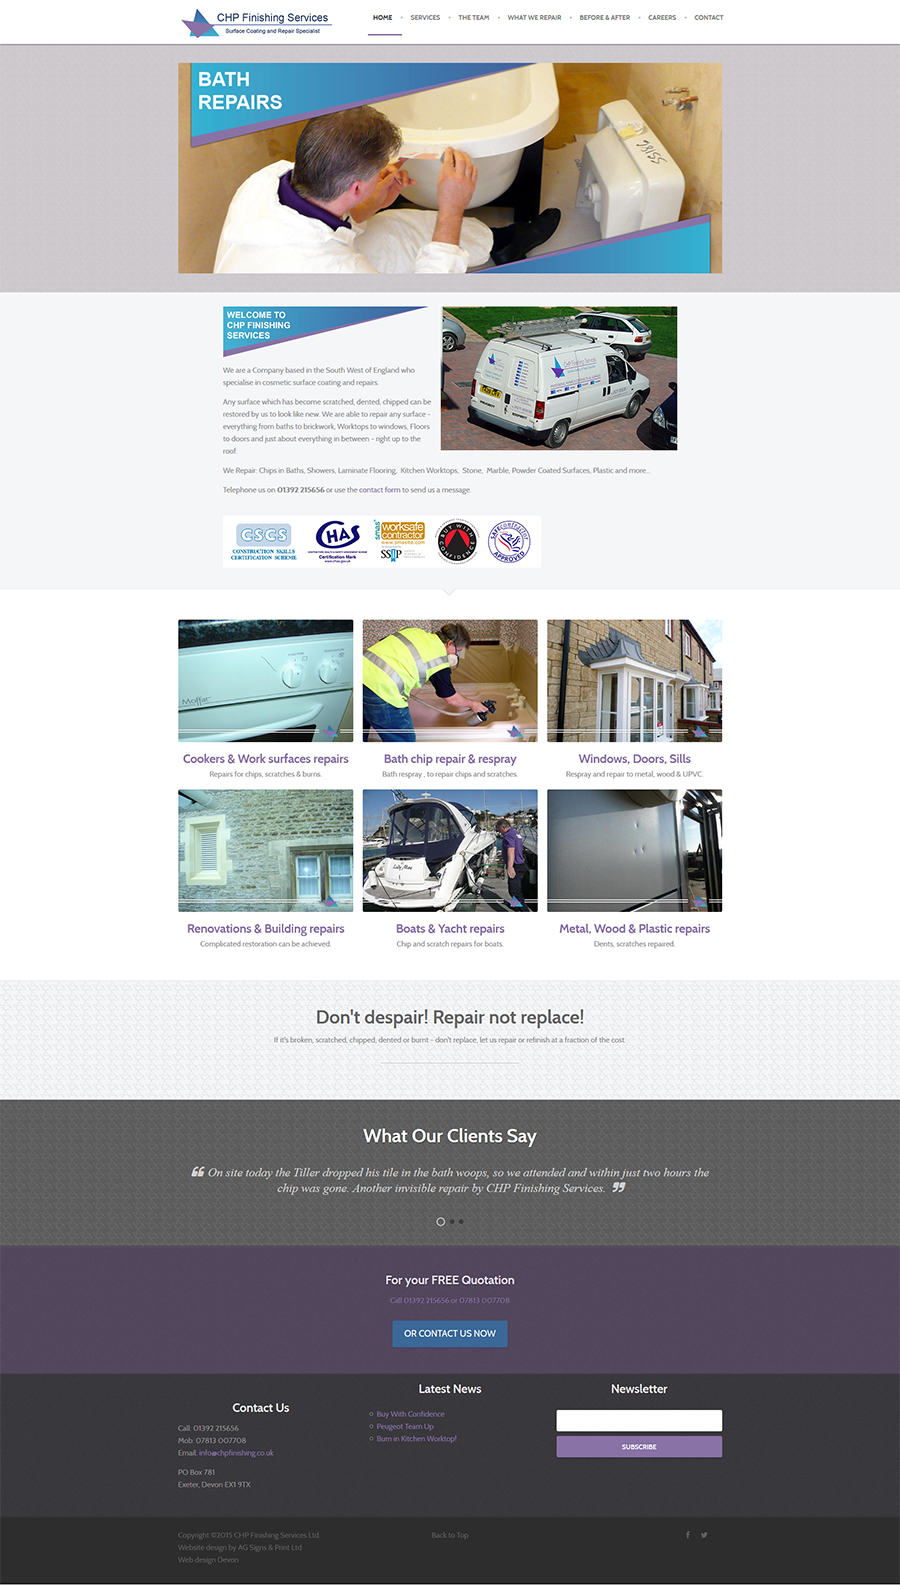 web design Exeter CHP Finishing